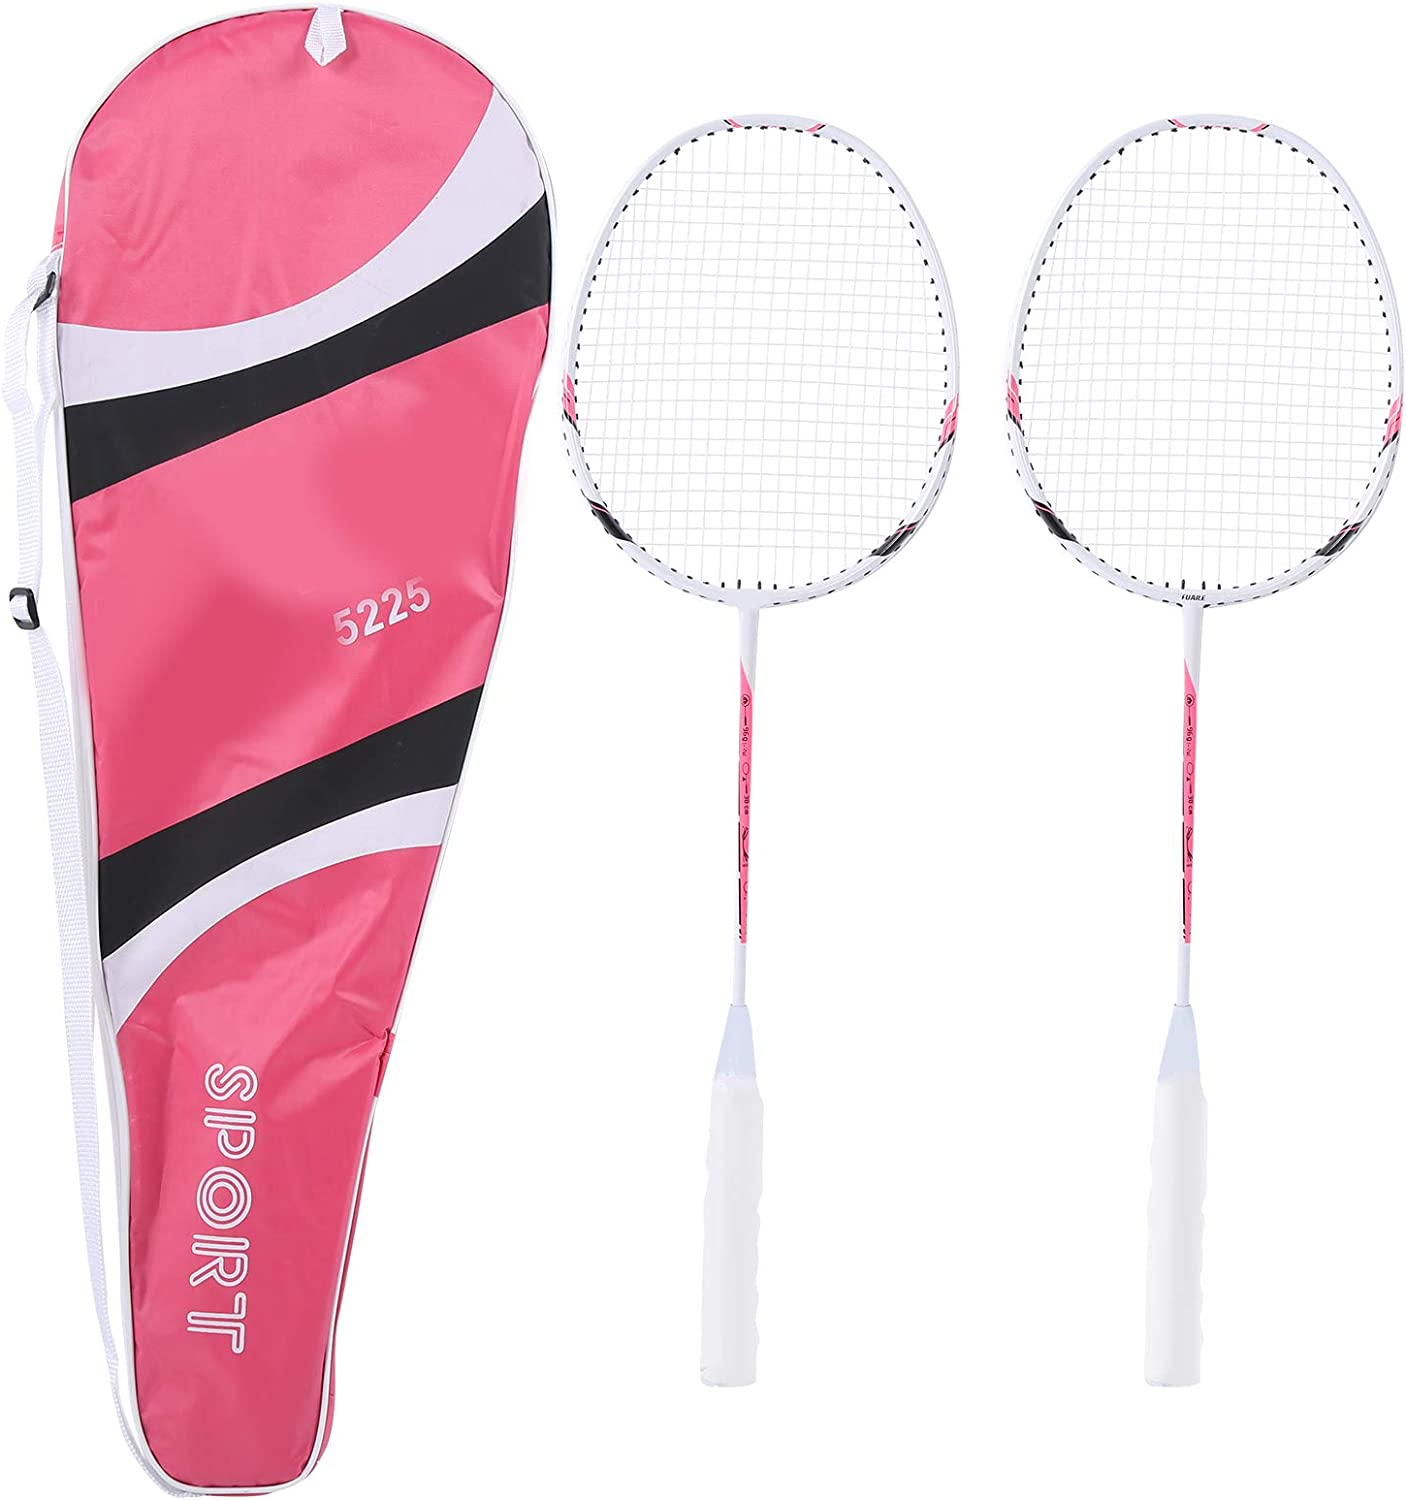 Shipenophy ! Super beauty product restock quality top! Sport Equipment with Carry Direct store Bag Durability Alumin High